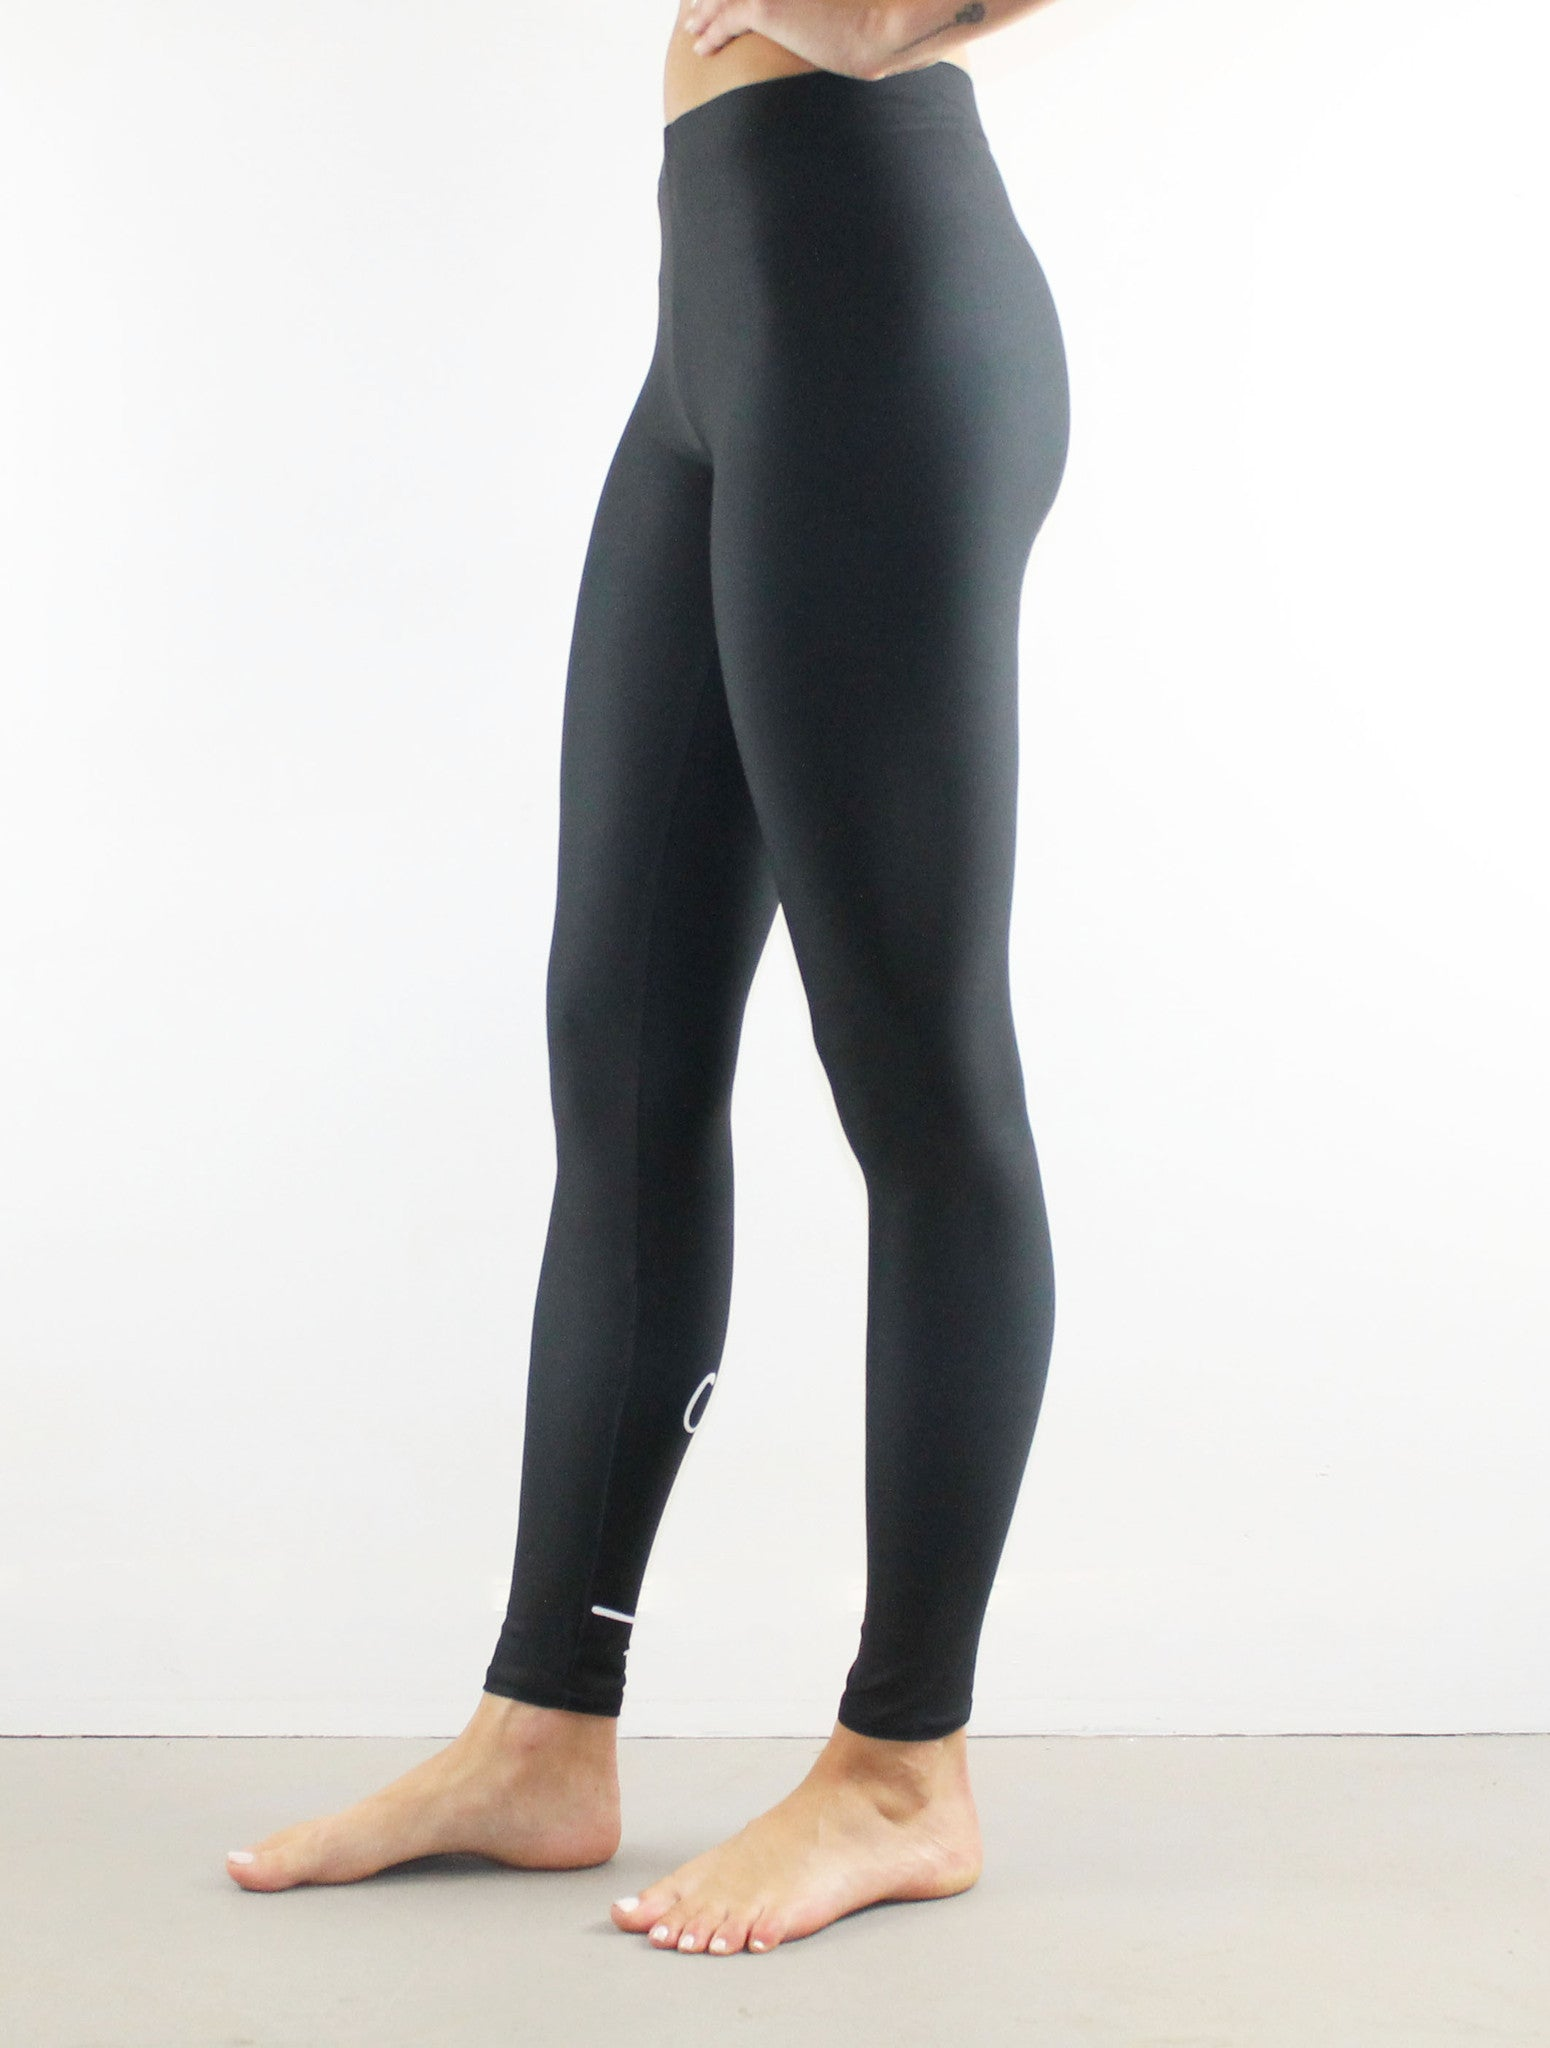 Never Stress Leggings // White on Black